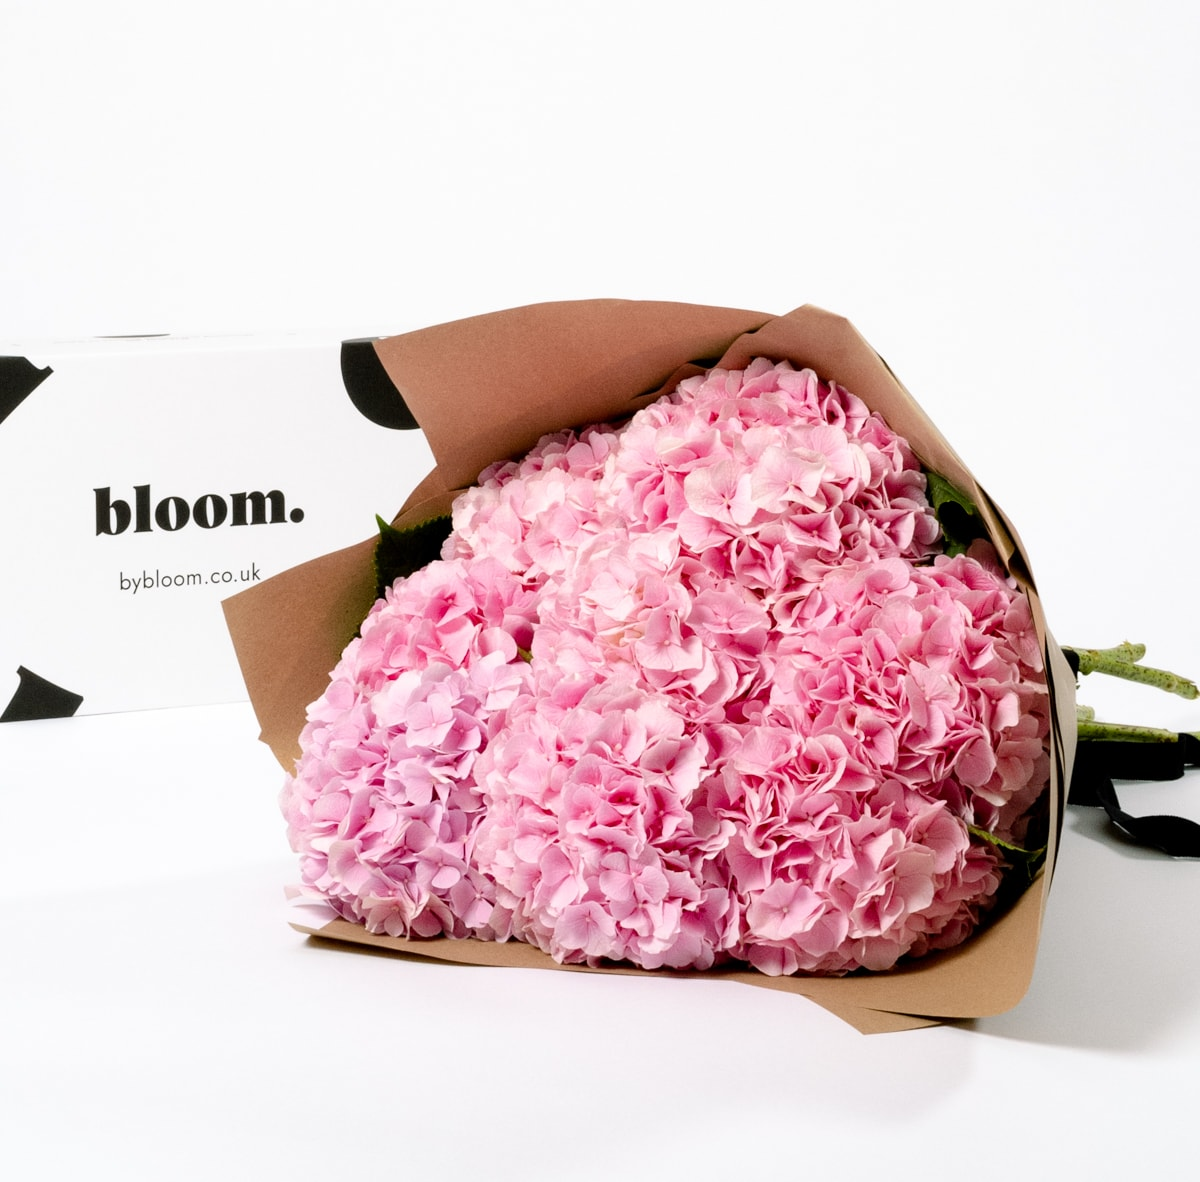 Bloom Flower Delivery   Cotton Candy Pink Hydrangea